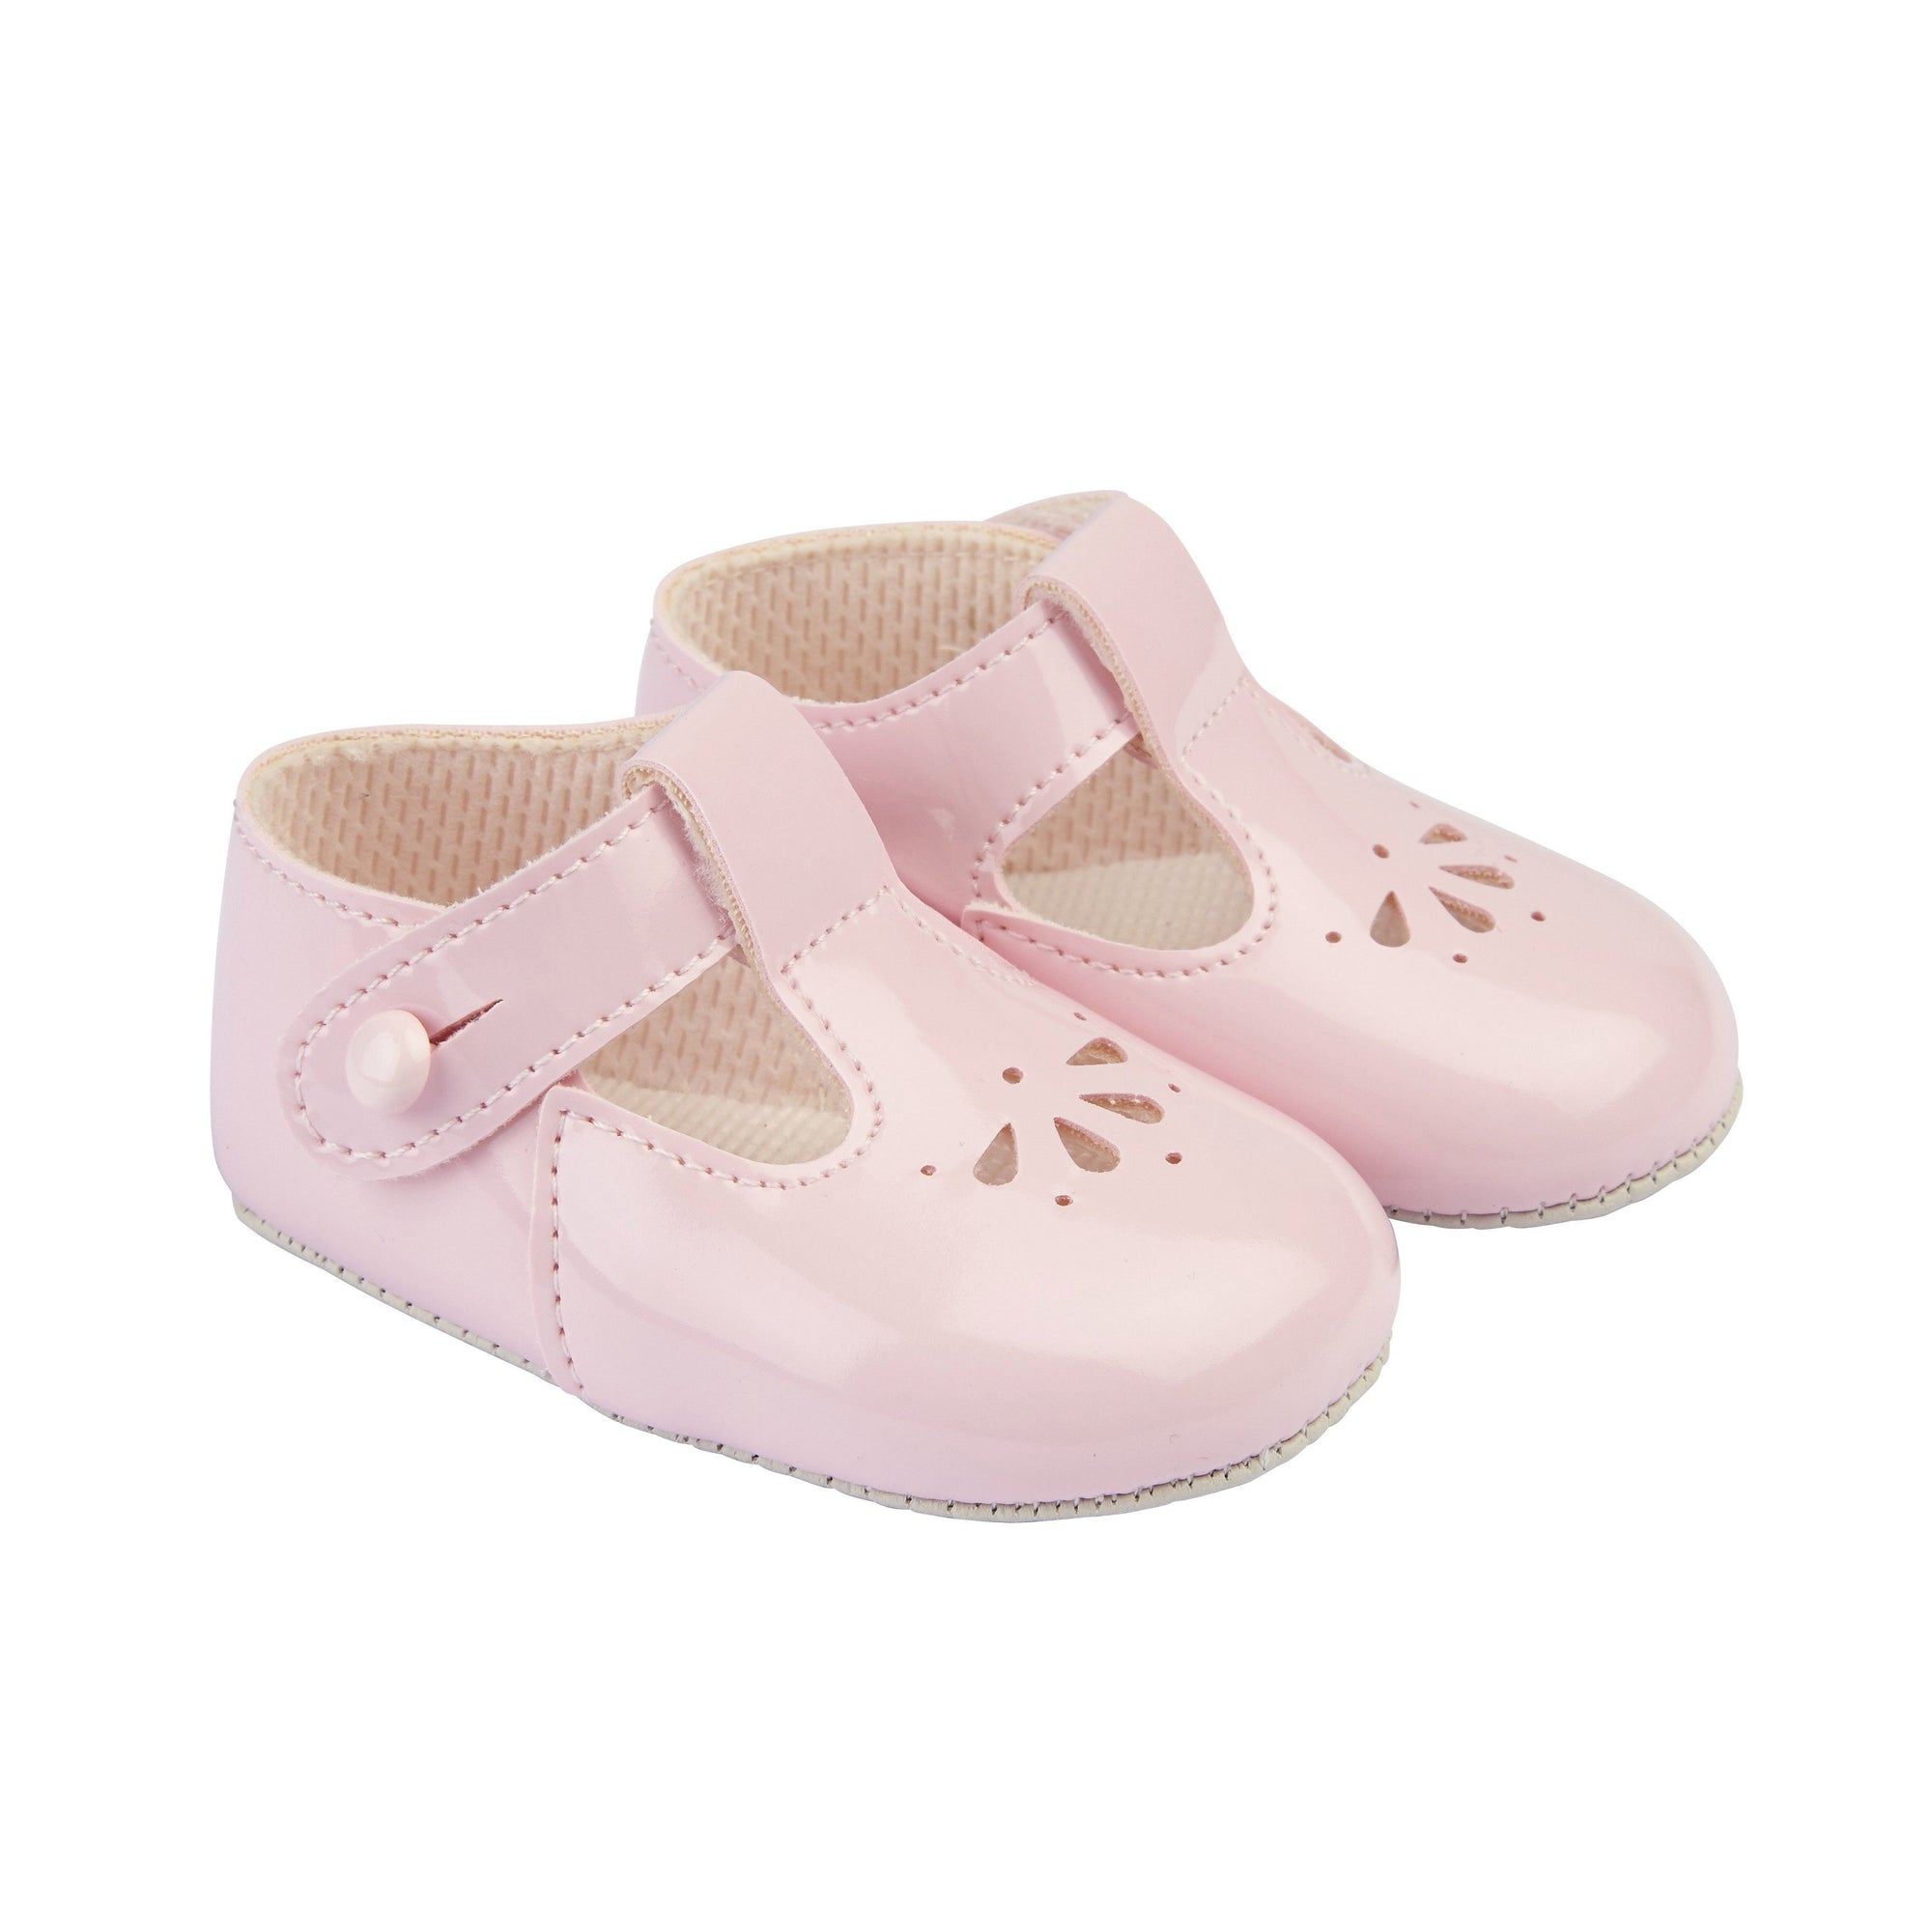 Baypods Pink Patent Petal Punch T-Bar Shoes | Millie and John